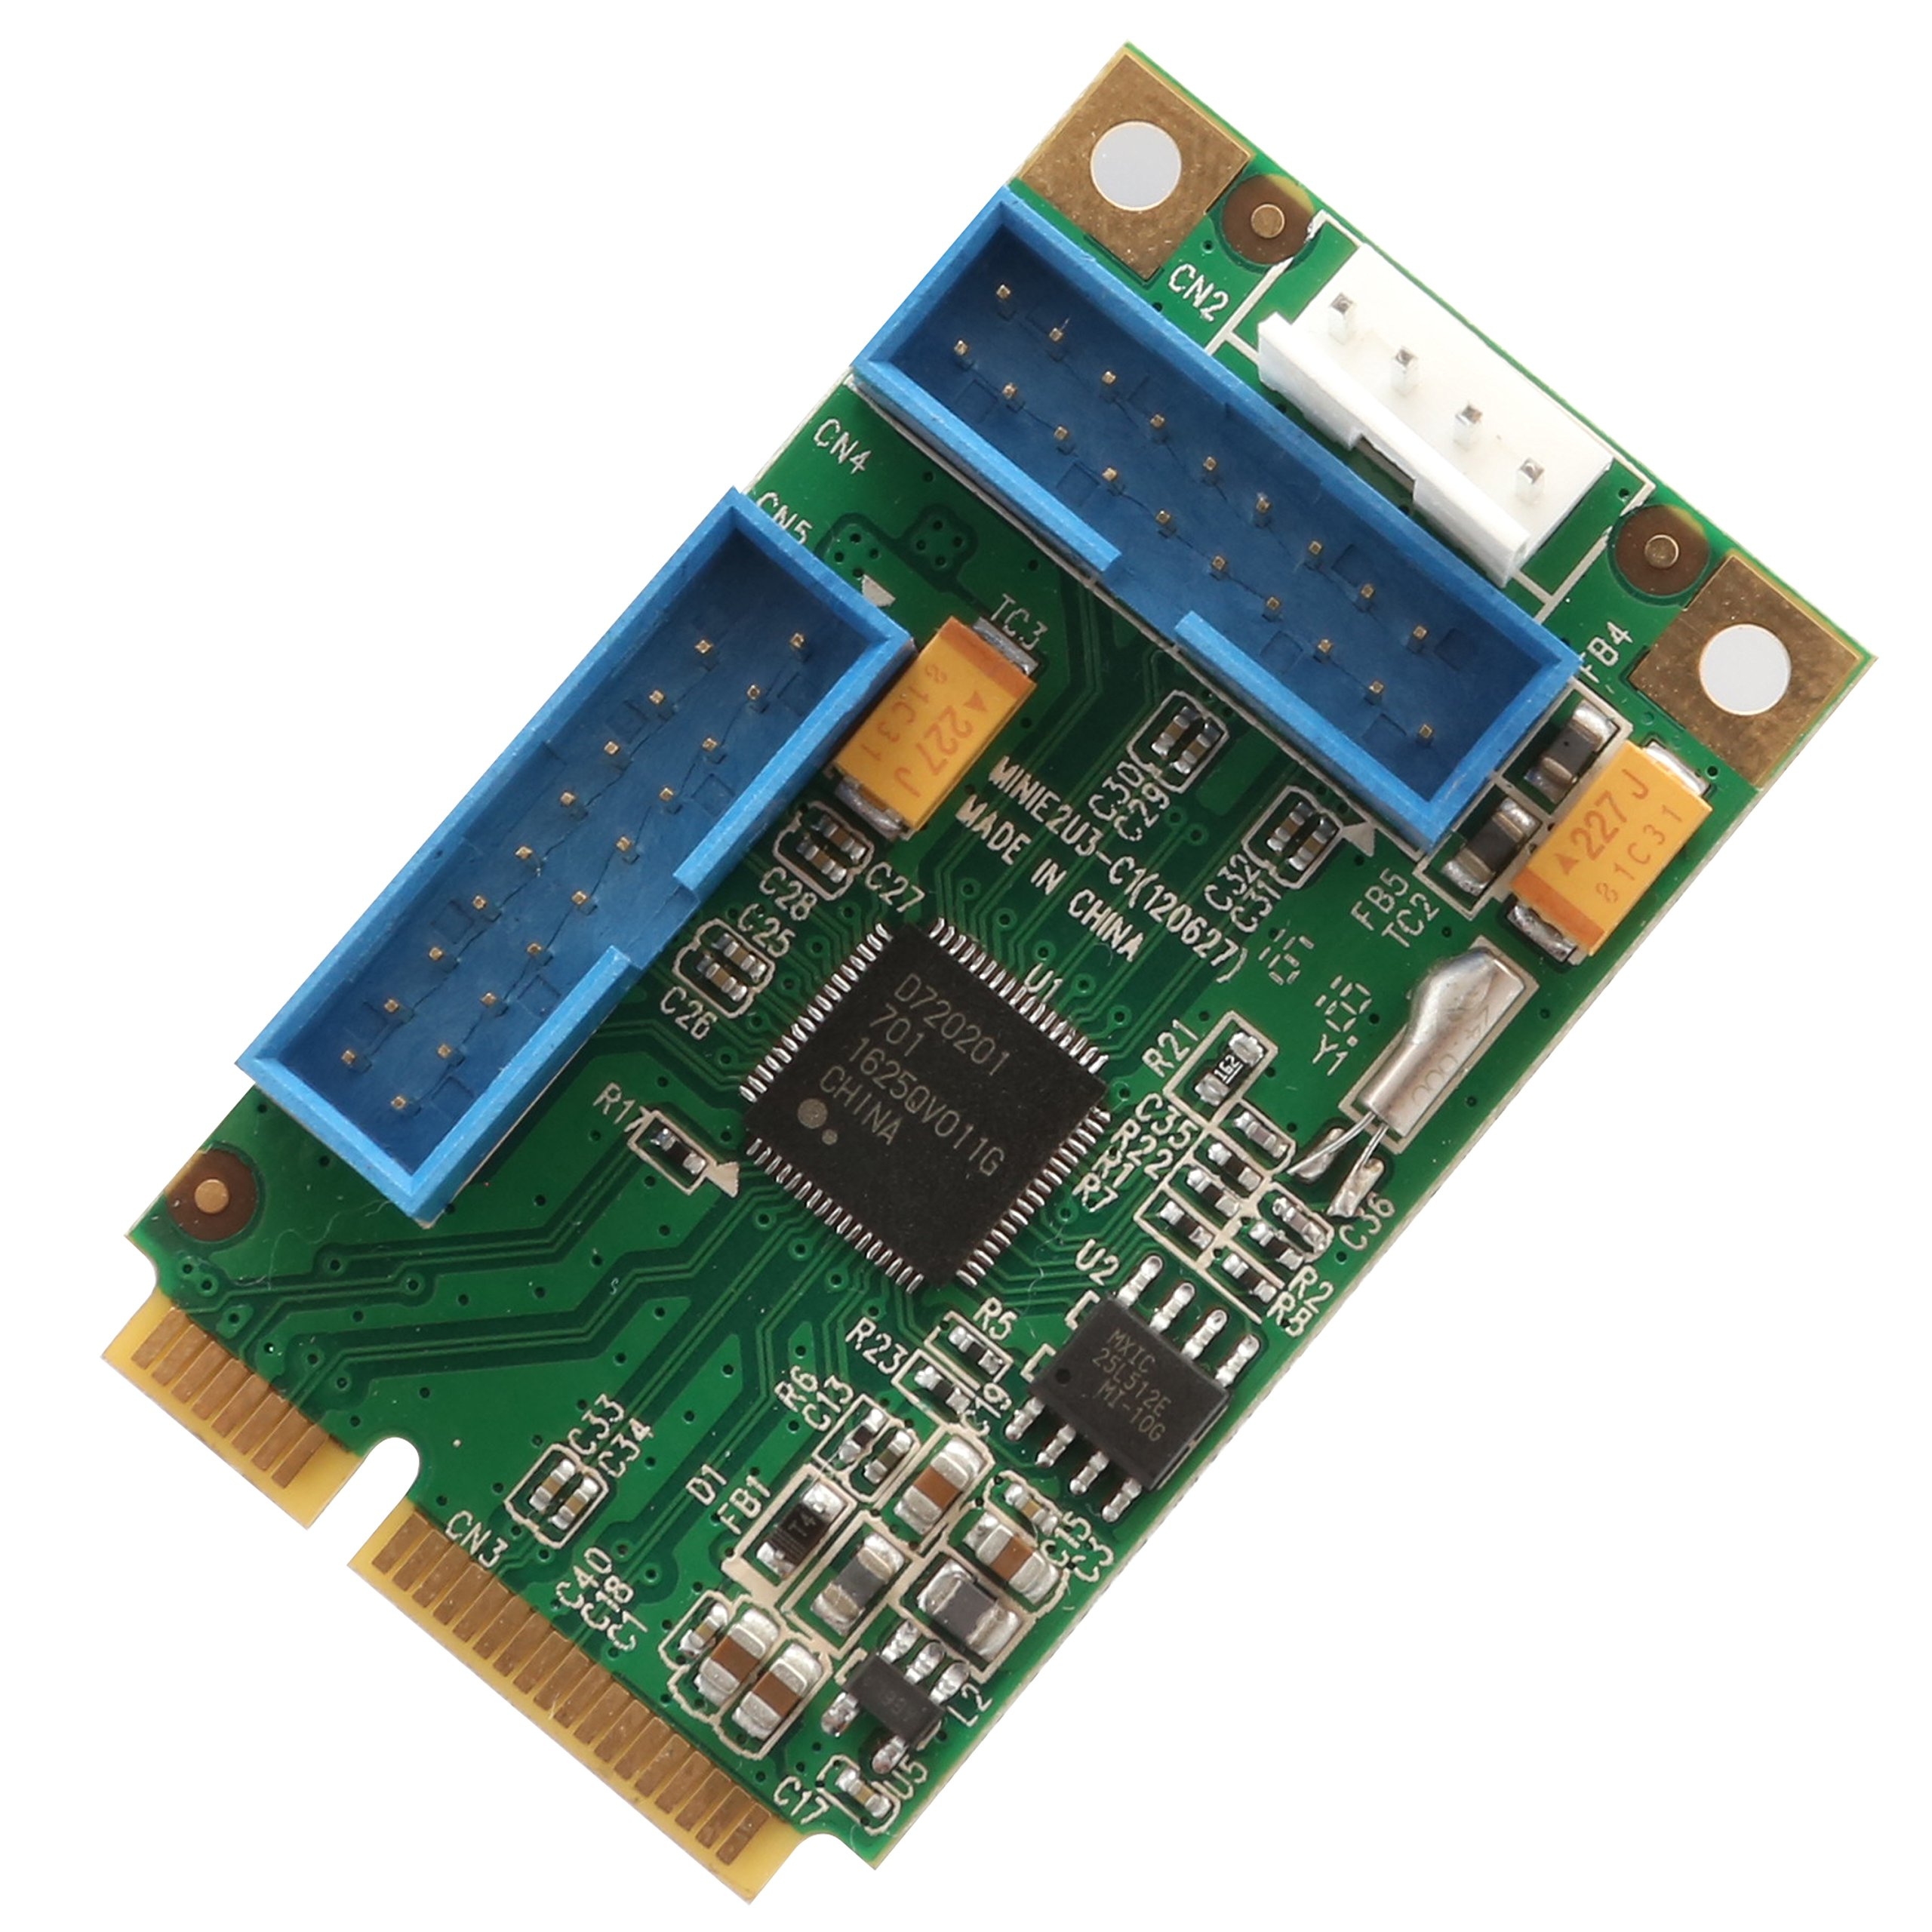 Mini PCIe IO Crest USB 3.0 Super-Speed Host Controller Card